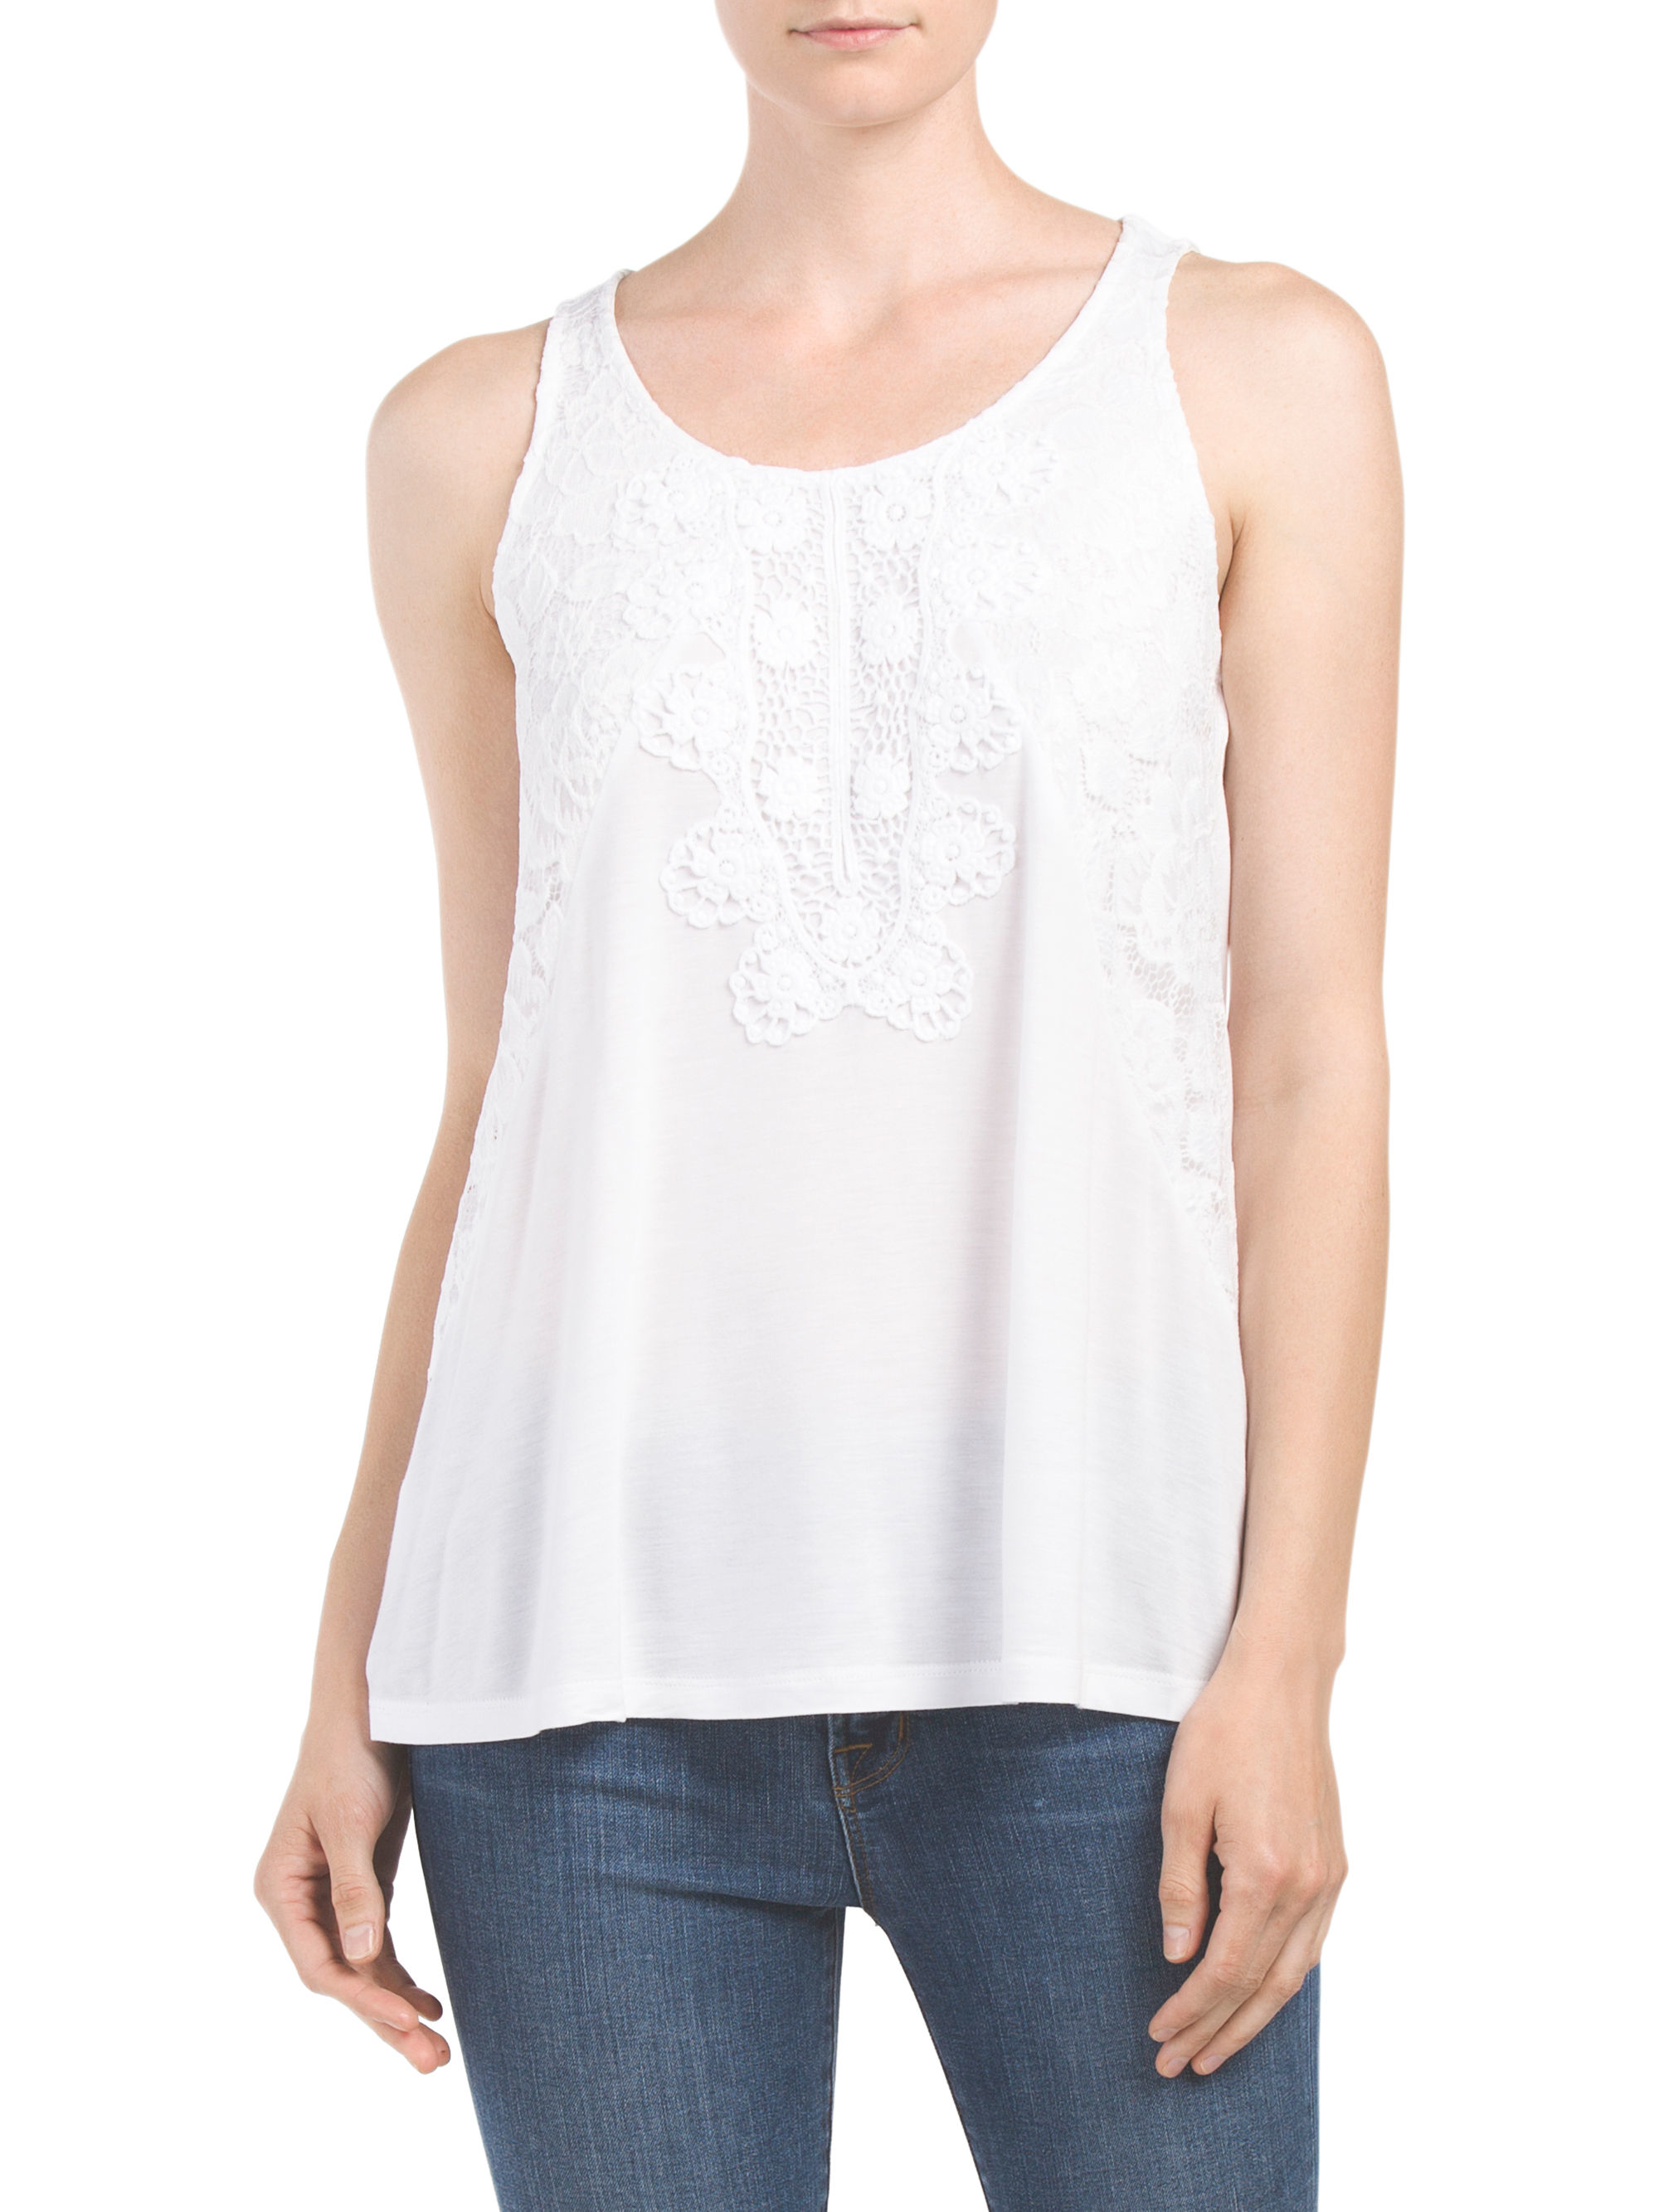 Tj maxx scoop neck top with crochet in white lyst for Tj maxx t shirts